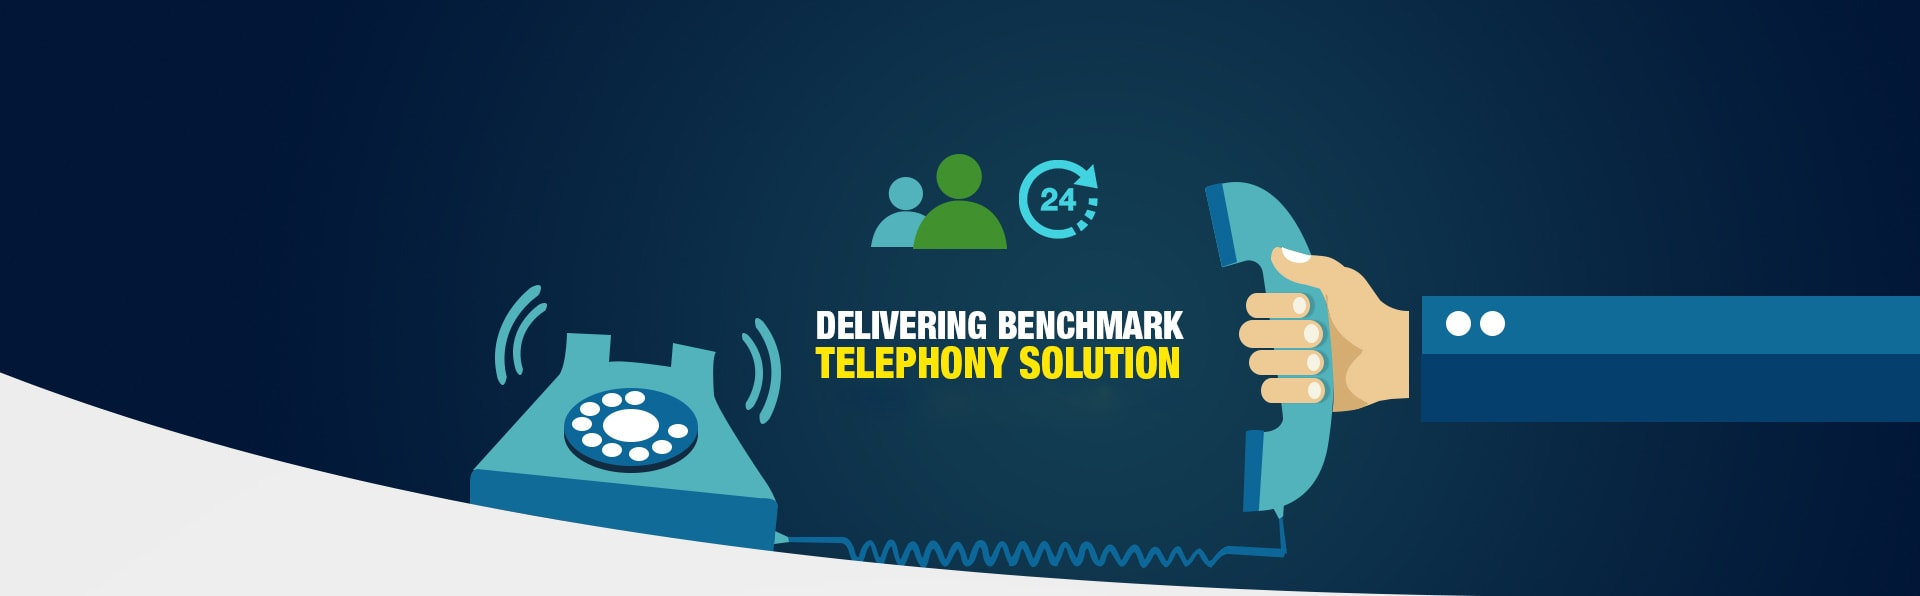 About Big V Telecom - A Cloud Telephony service provider in India.